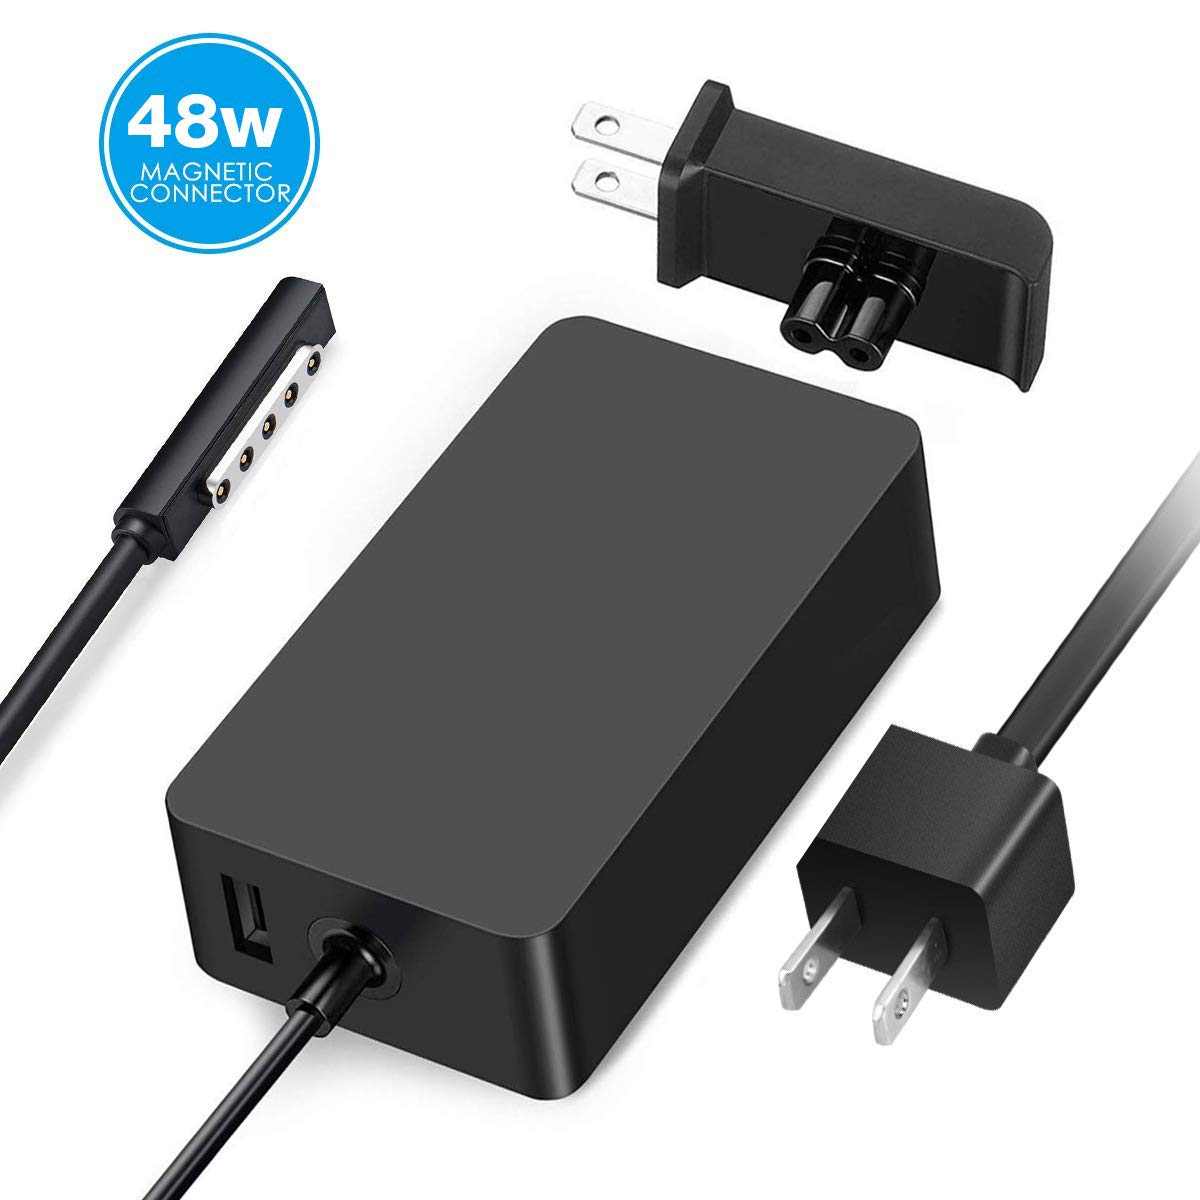 AC Adapter Charger 48W 12V 3.6A for Surface RT Surface Pro 1 Surface Pro 2 Surface 2 1512 1536 Charger, with 6Ft Power Cord and Portable Wall Plug